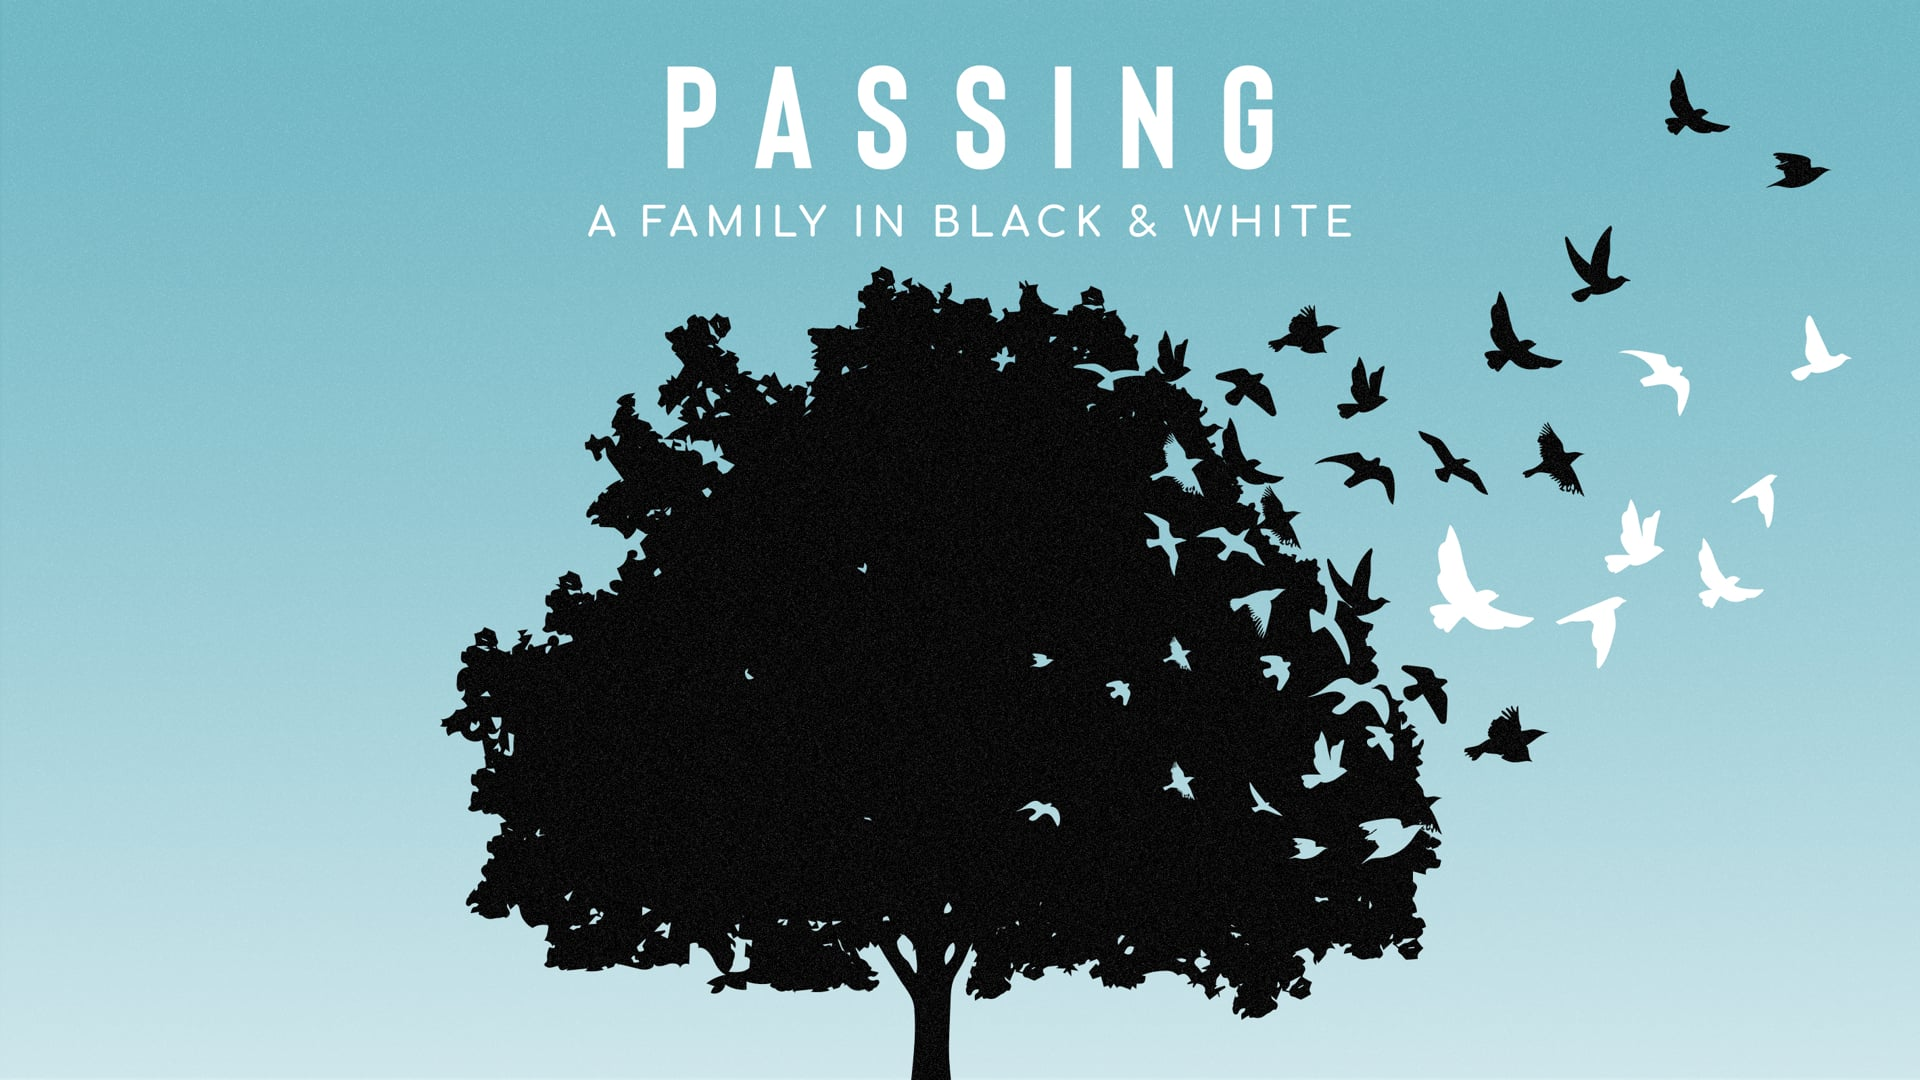 Passing: A Family in Black & White_Trailer